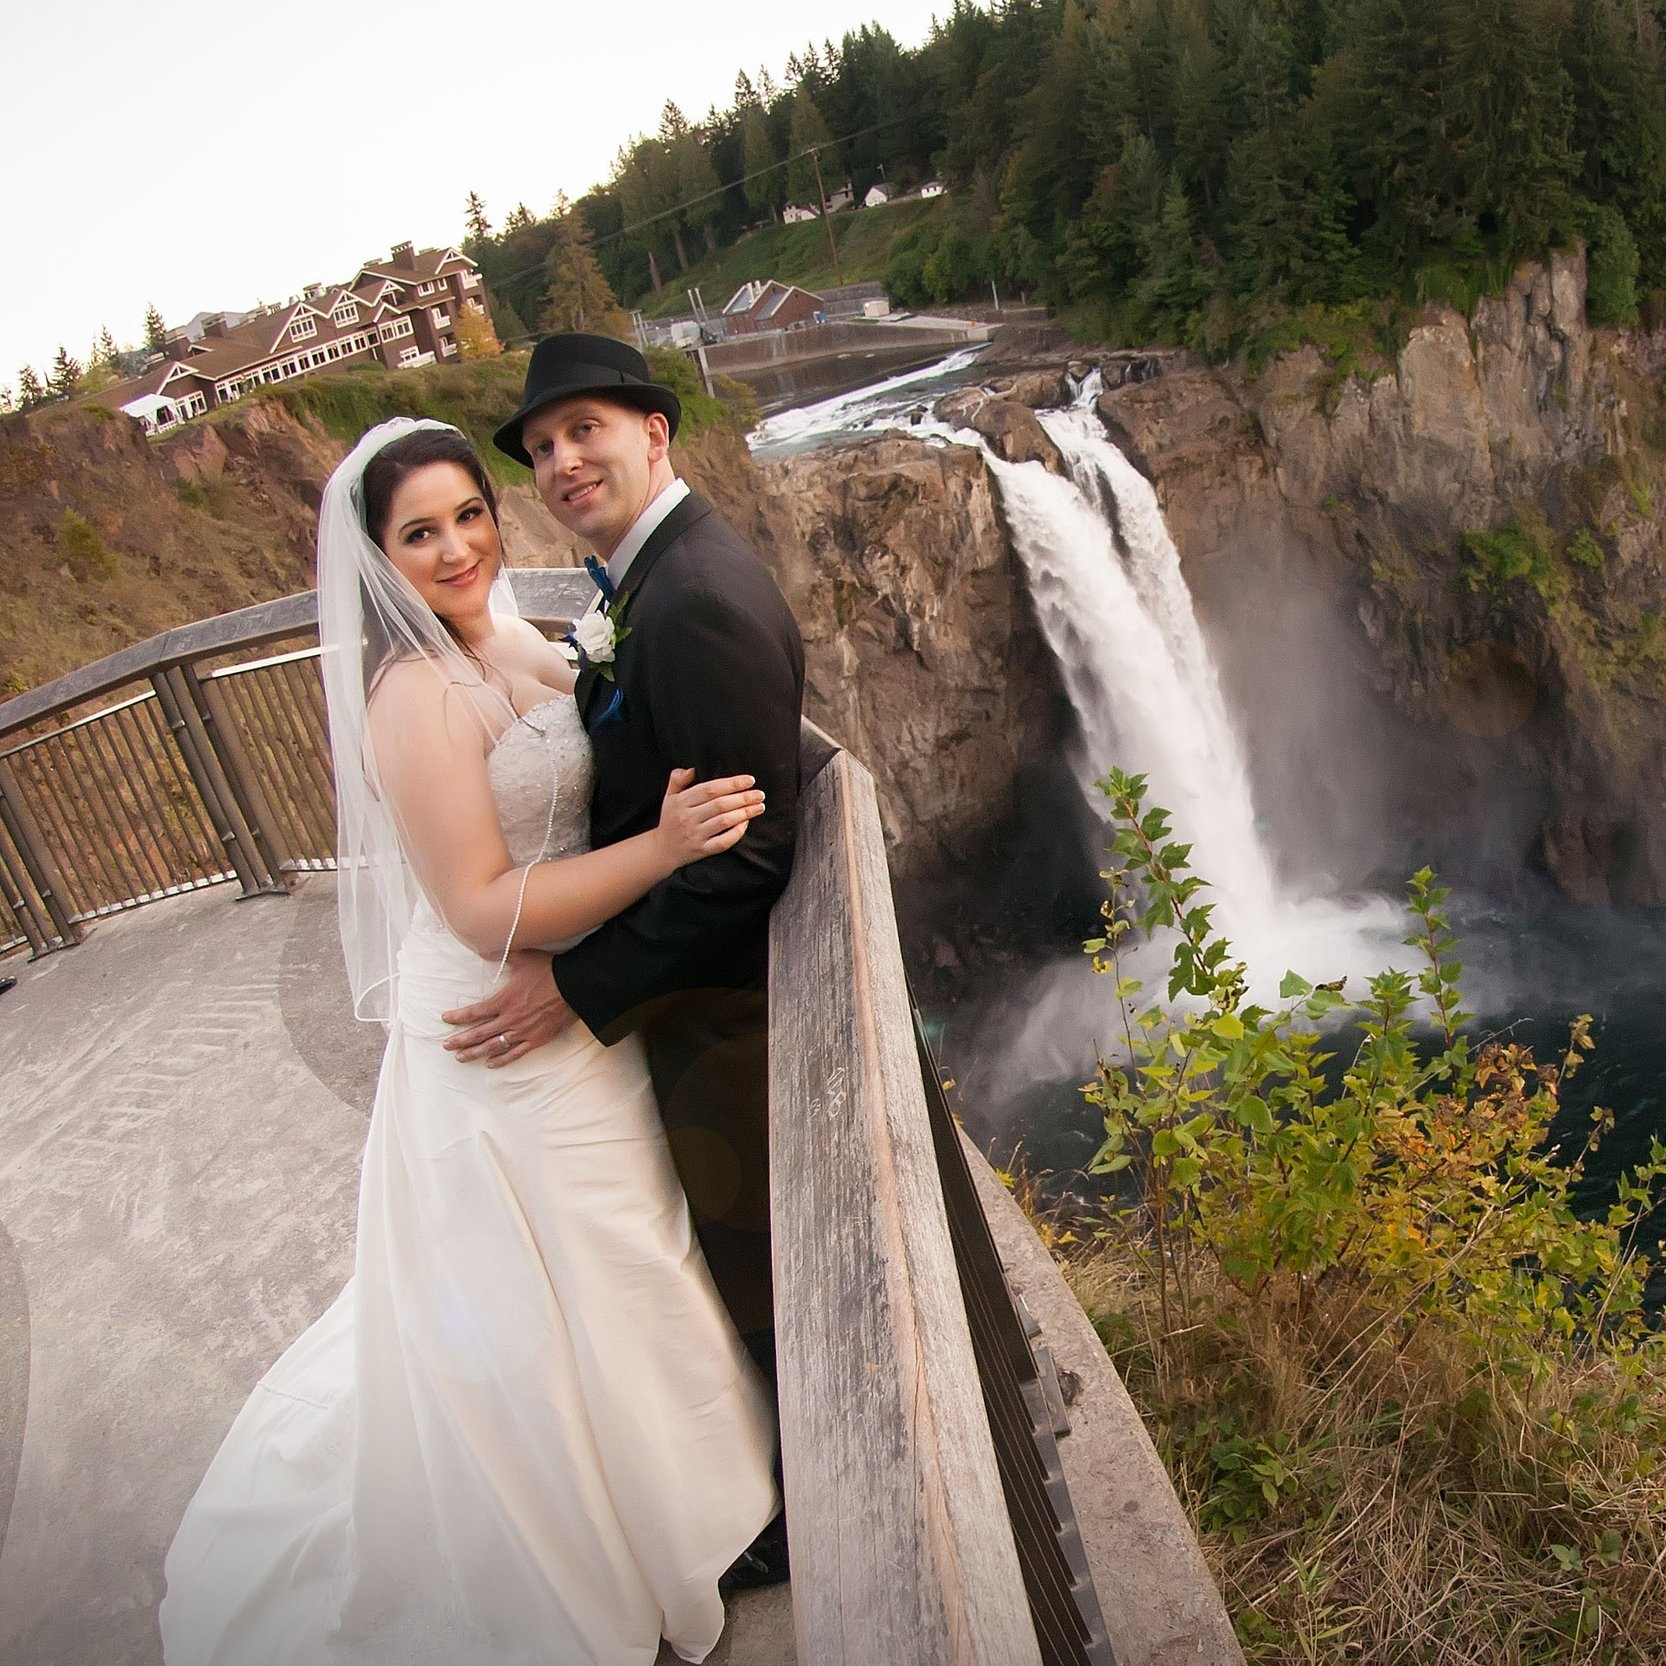 Bride & Groom Infront of Waterfall.jpg